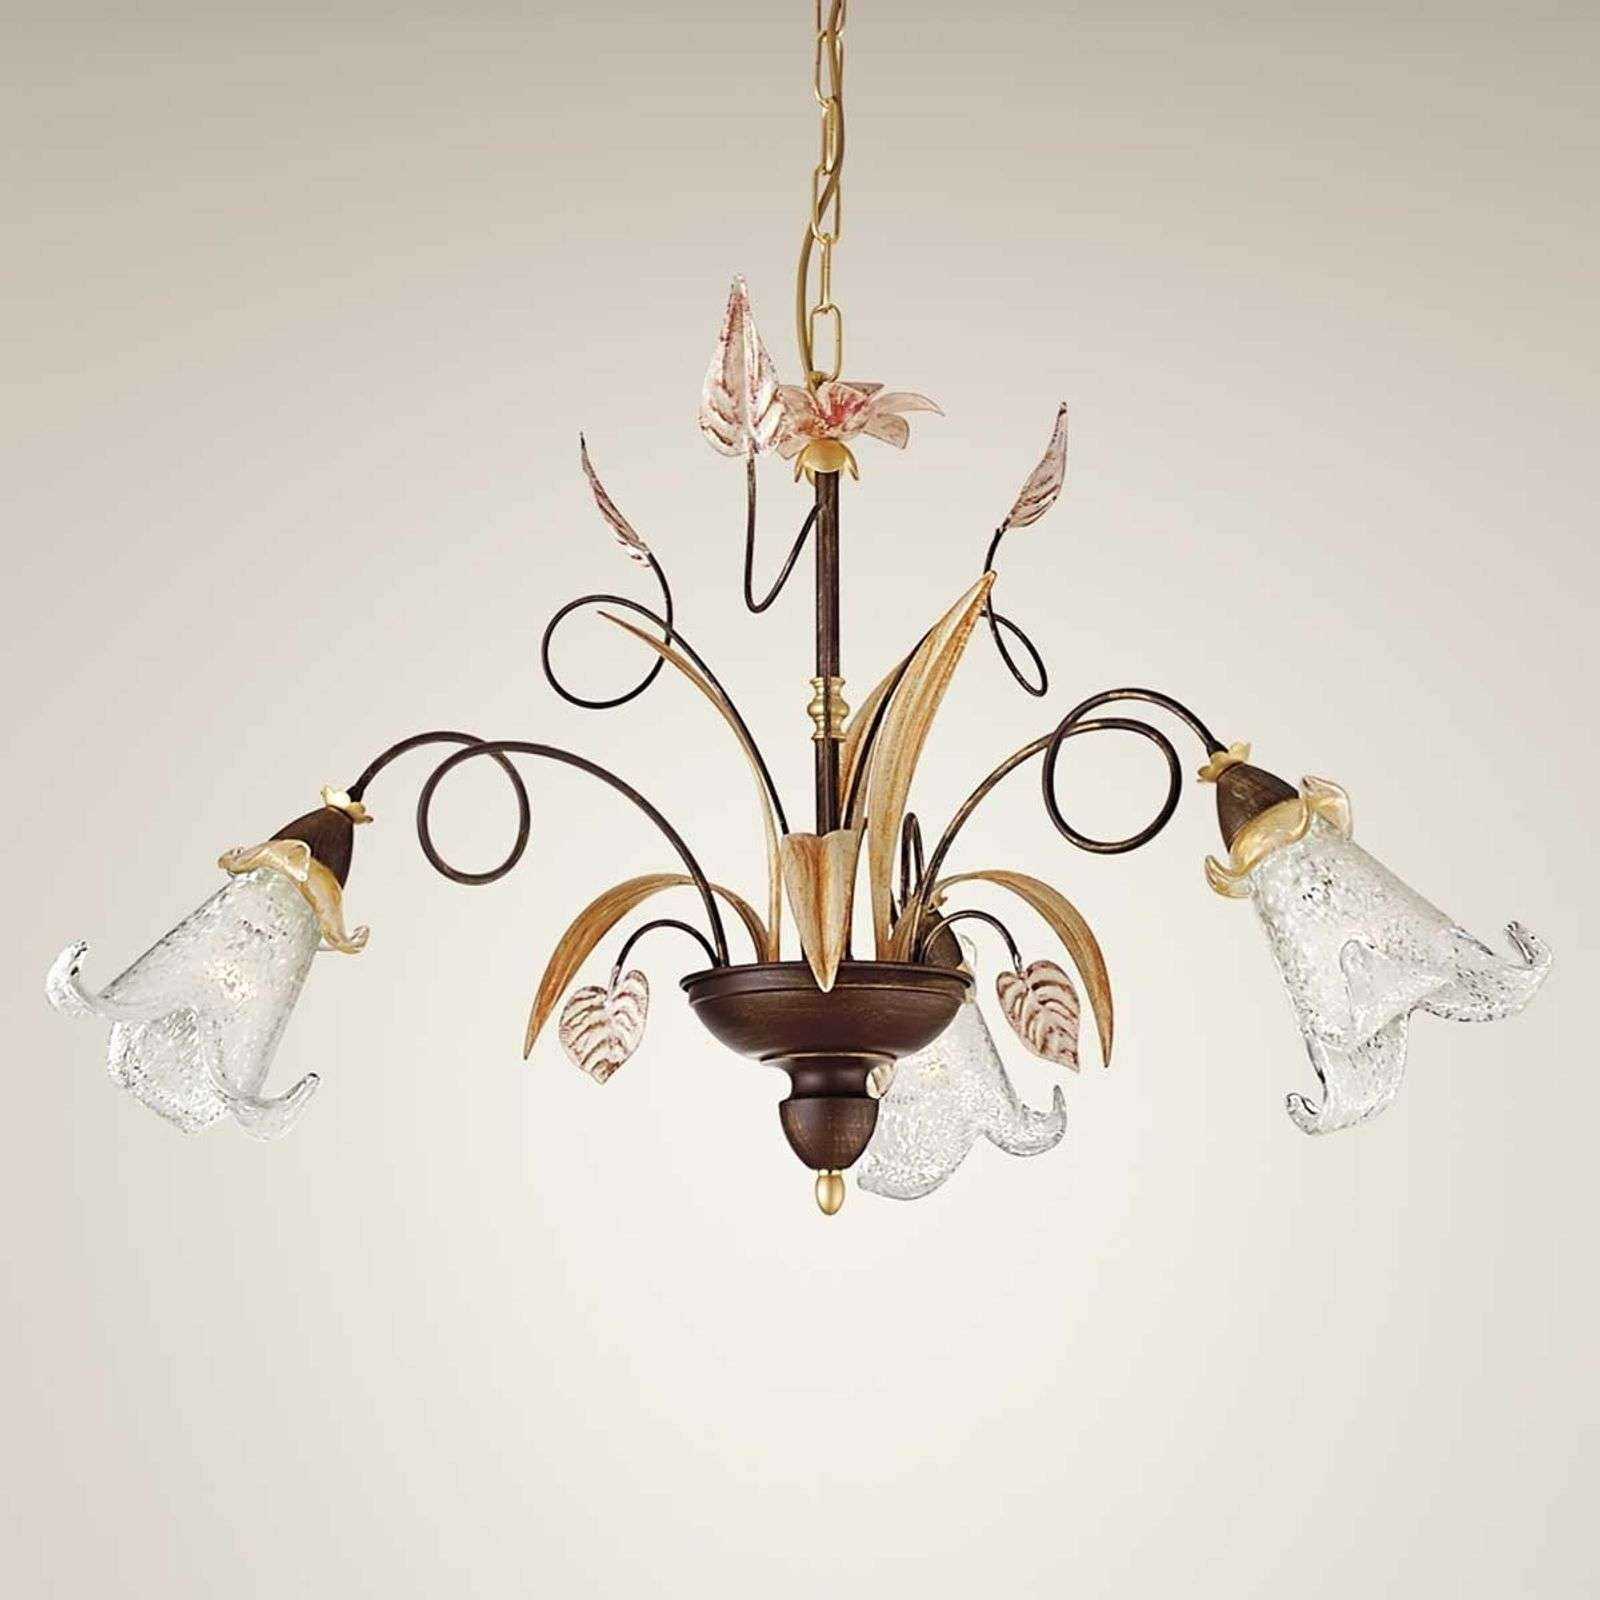 Florale hanglamp Giuseppe, 3-lichts